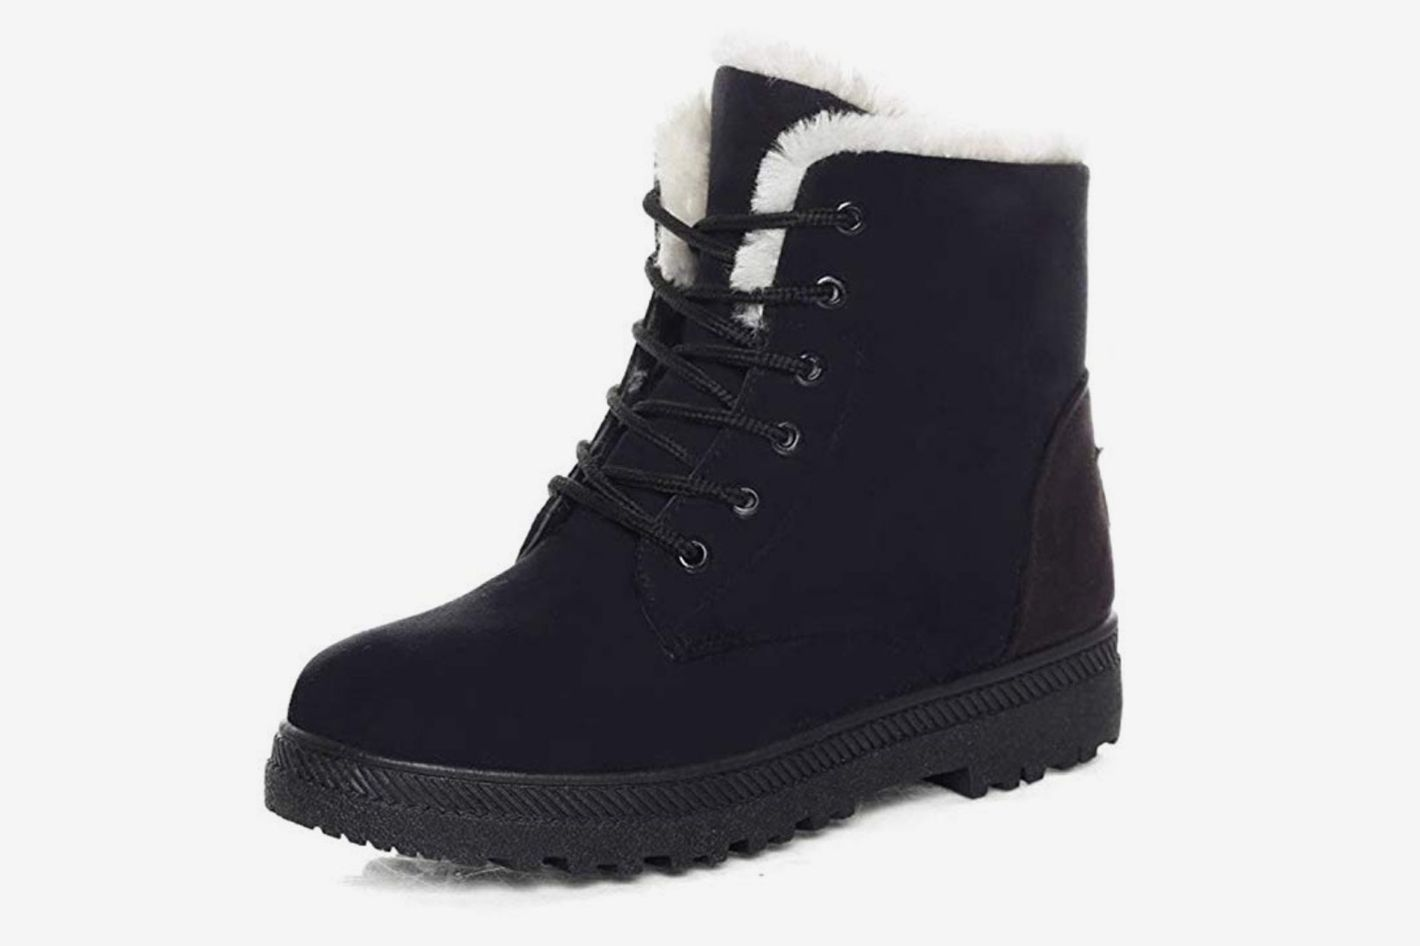 Dadawen Women S Suede Waterproof Lace Up Winter High Top Snow Boots At